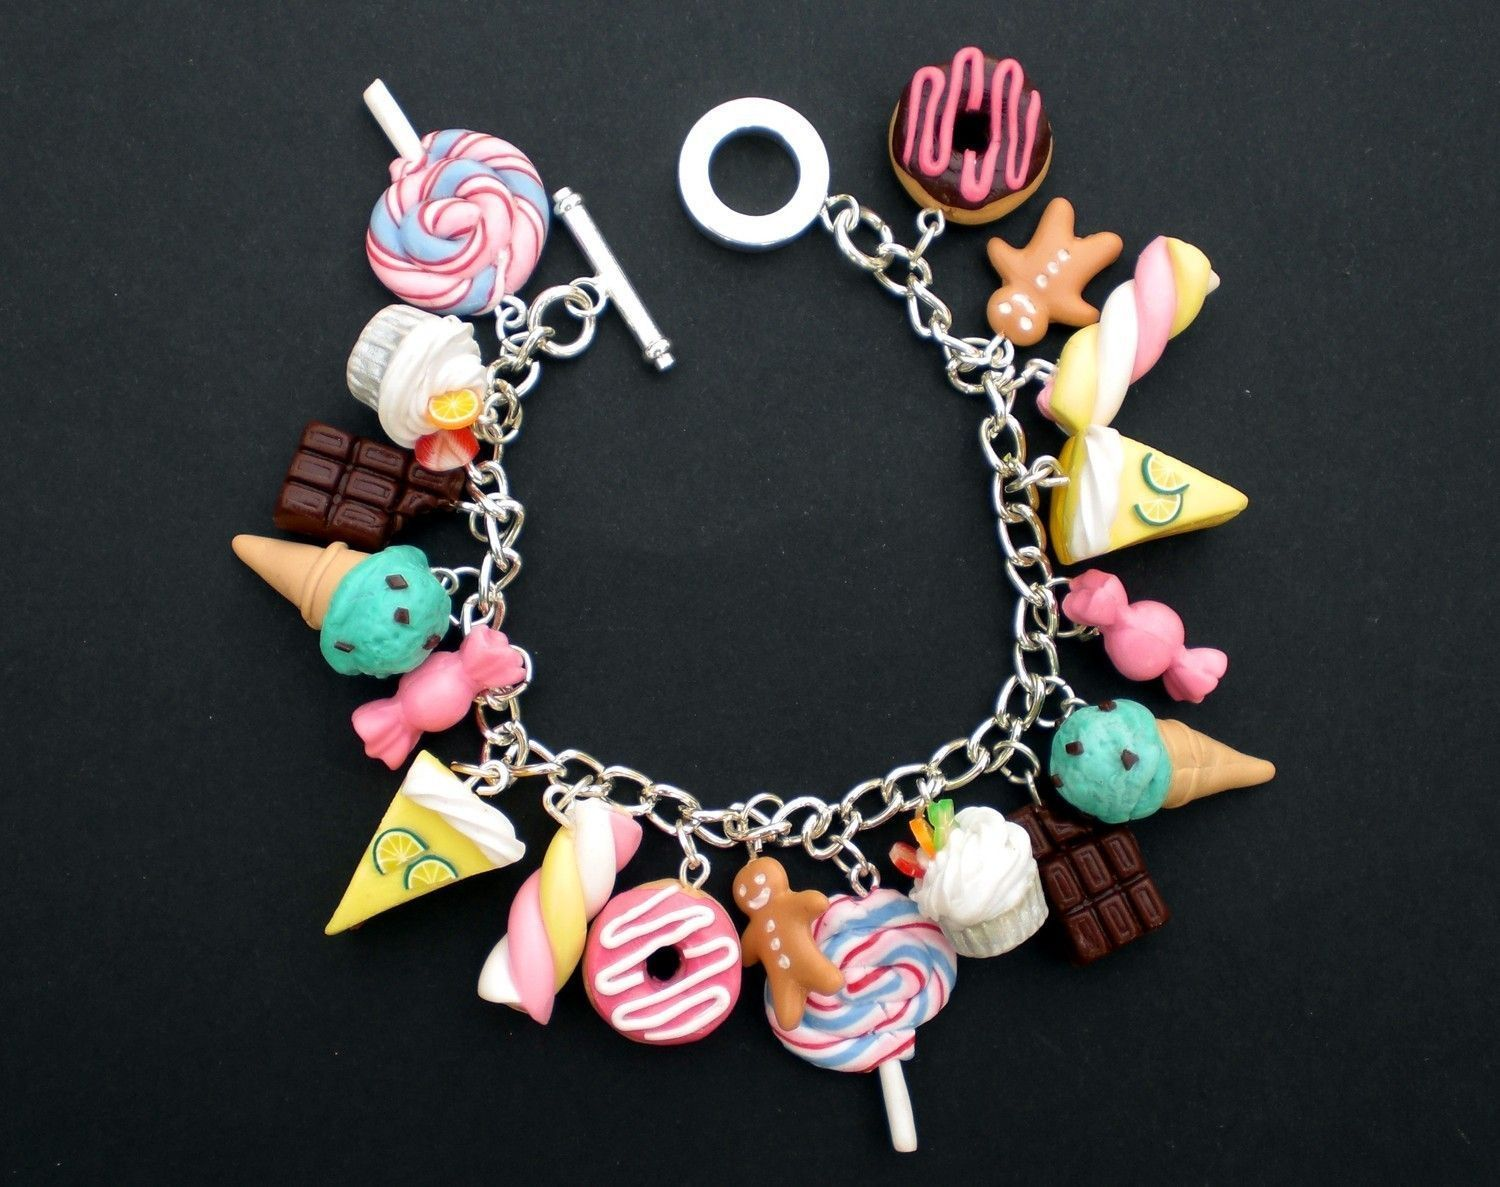 Kawaii Loaded Sweets and Desserts Charm by KooKeeJewellery on Etsy, $23.99 plating